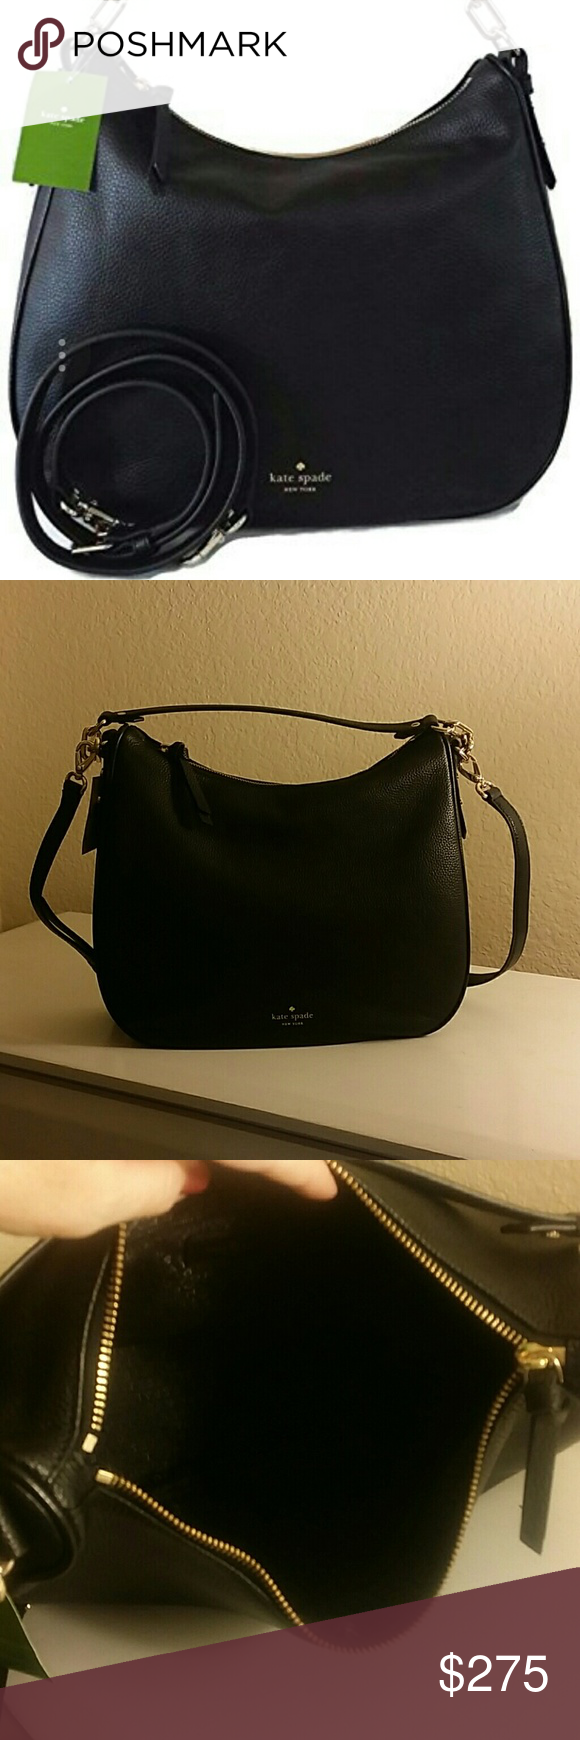 002766b680 Shoulder Bag. Leather Satchel. NWT - Kate Spade Vivian mulberry street  Brand new with tags. This is the Vivian